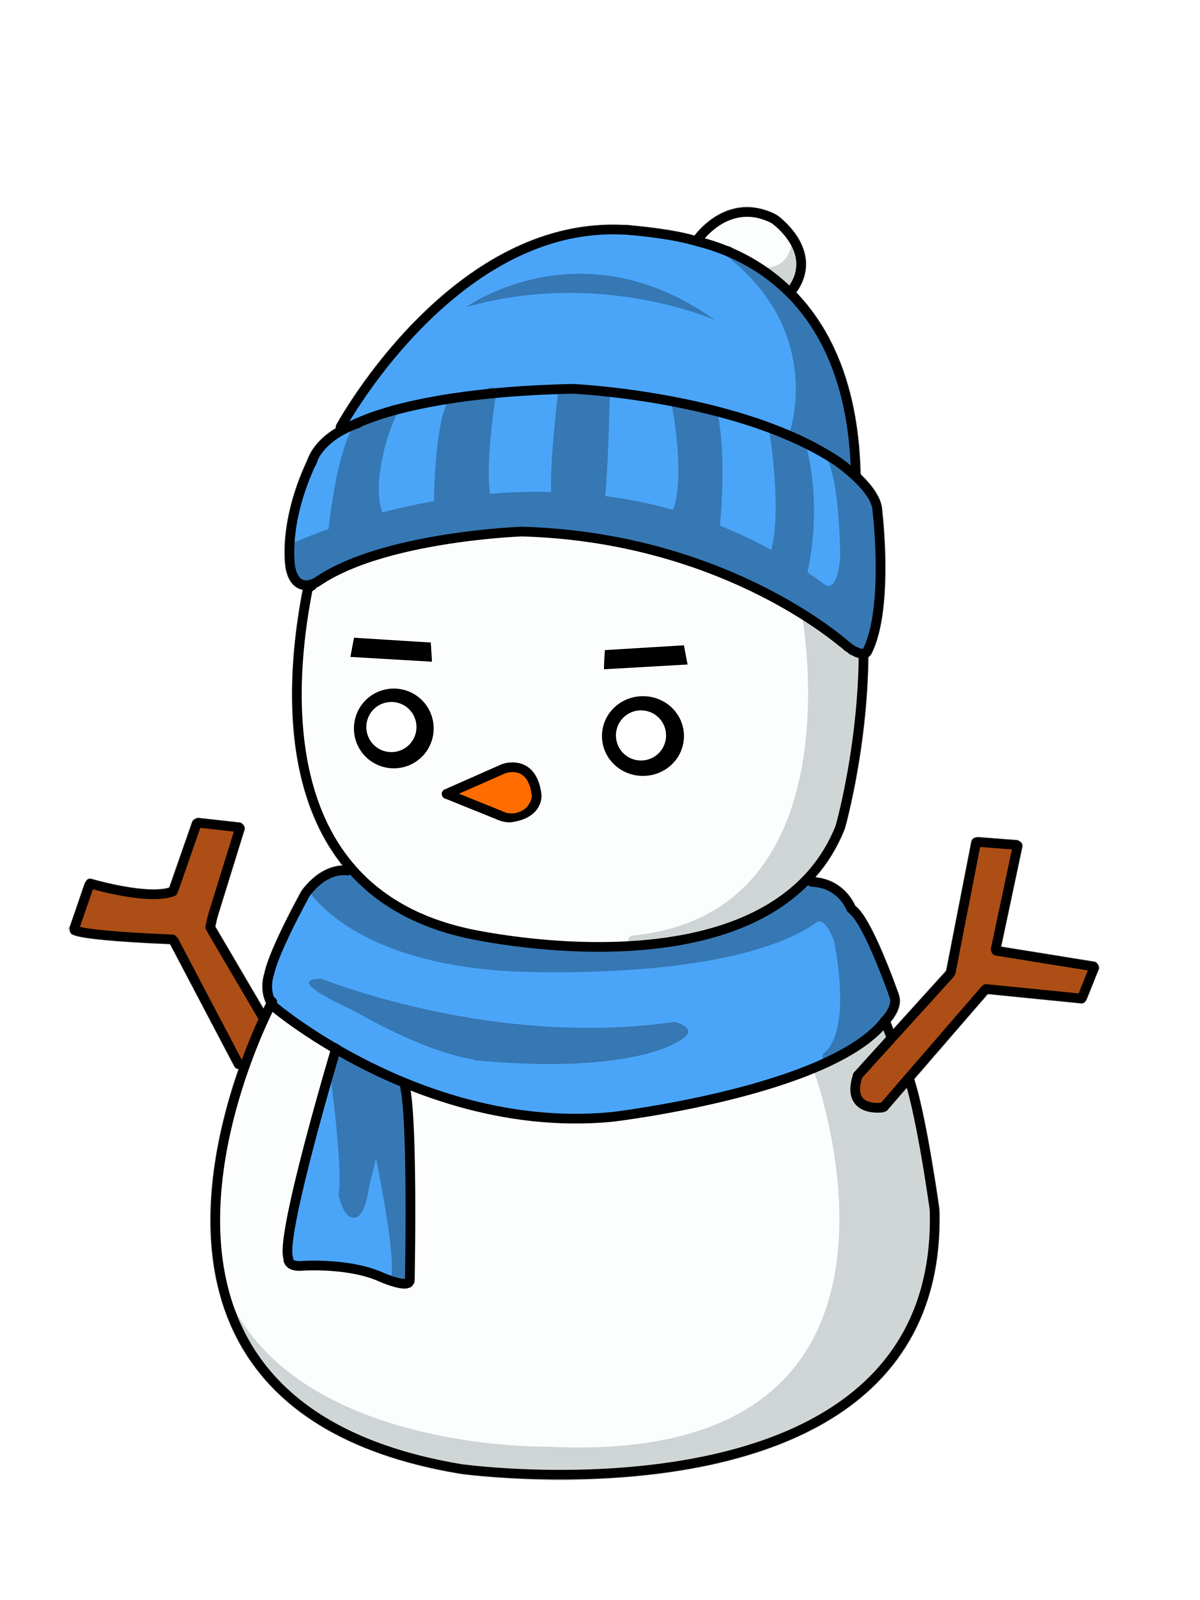 Best Snowman Clipart #2246 - Clipartion.com